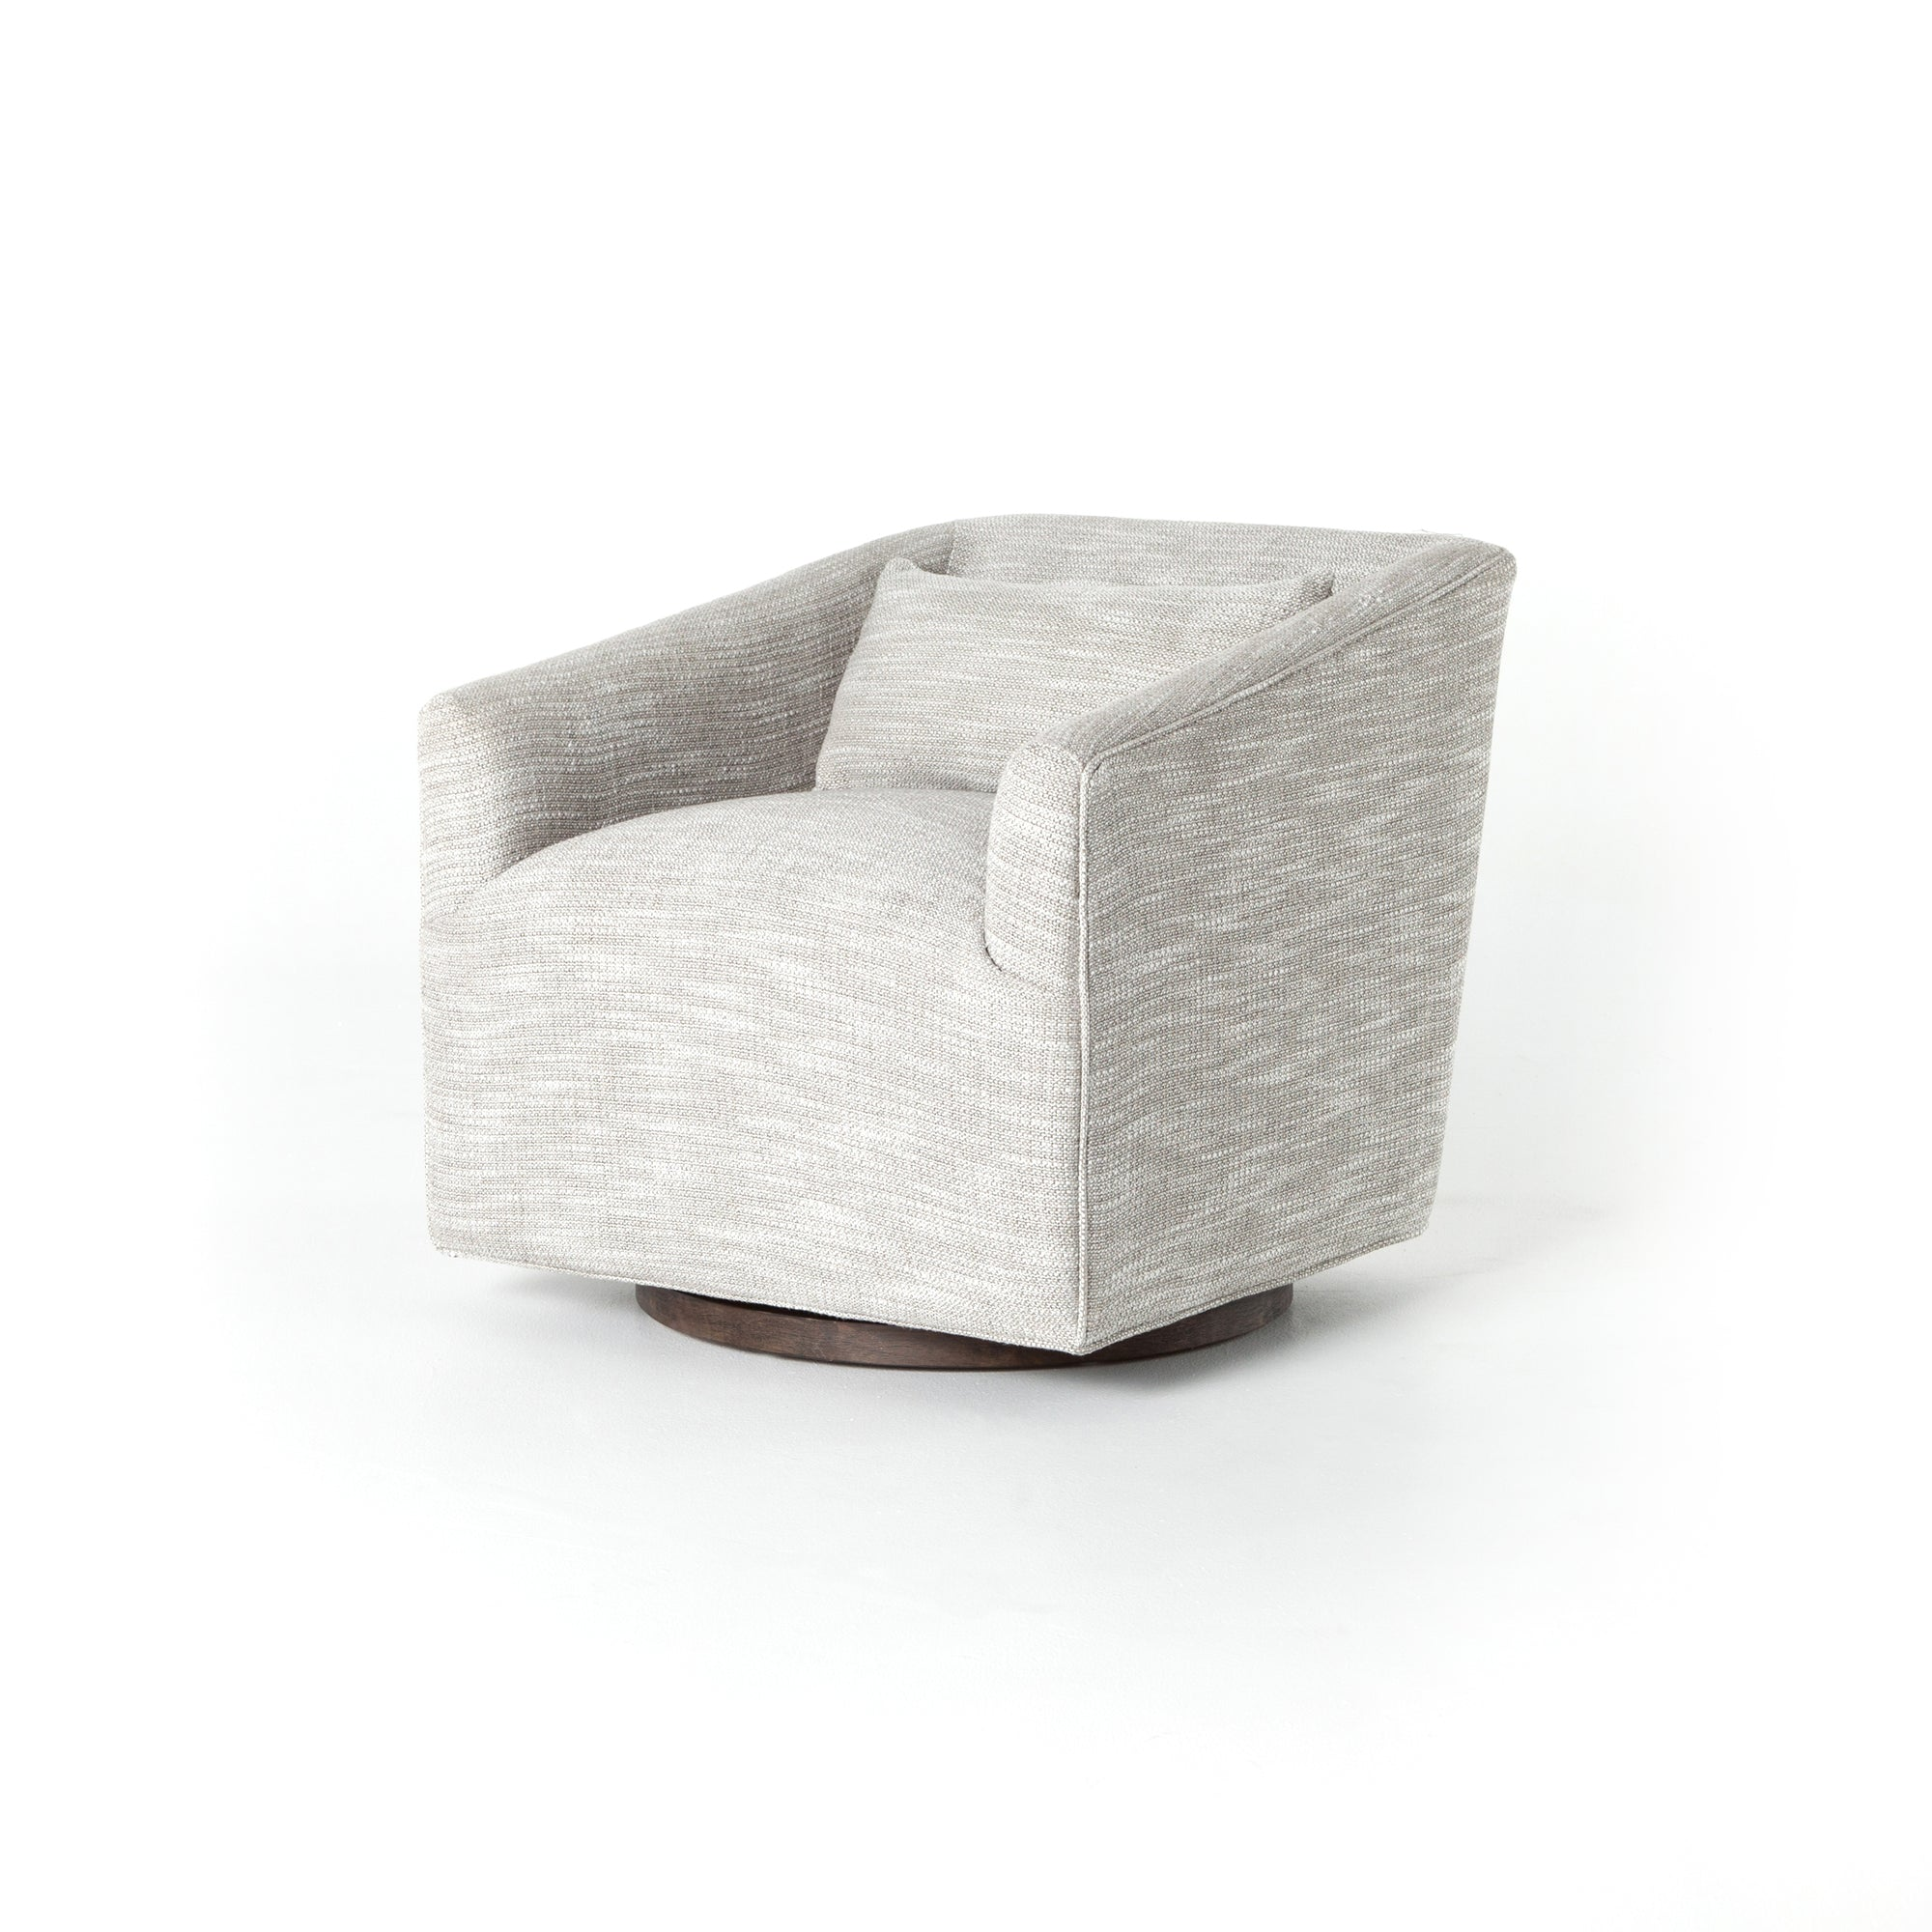 York Swivel Chair - Monterrey Pebble